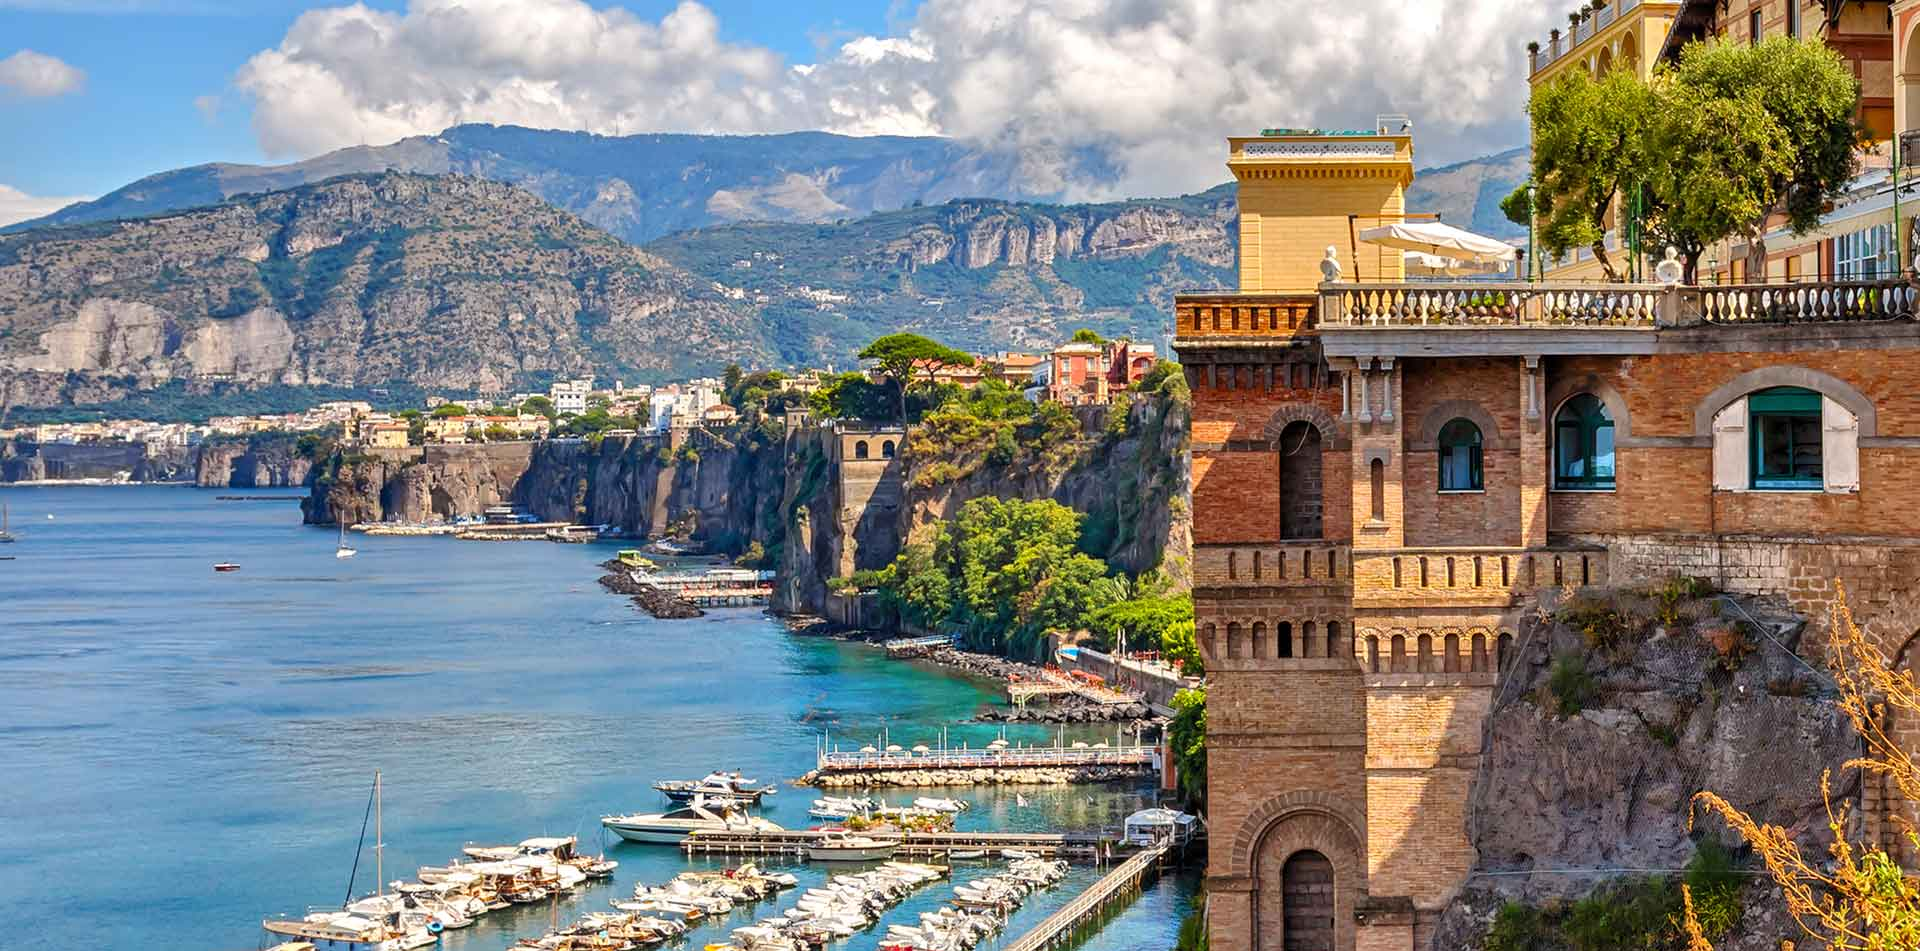 Europe Italy Amalfi Coast Sorrento Positano Marina Piccola cliffs overlooking the ocean - luxury vacation destinations